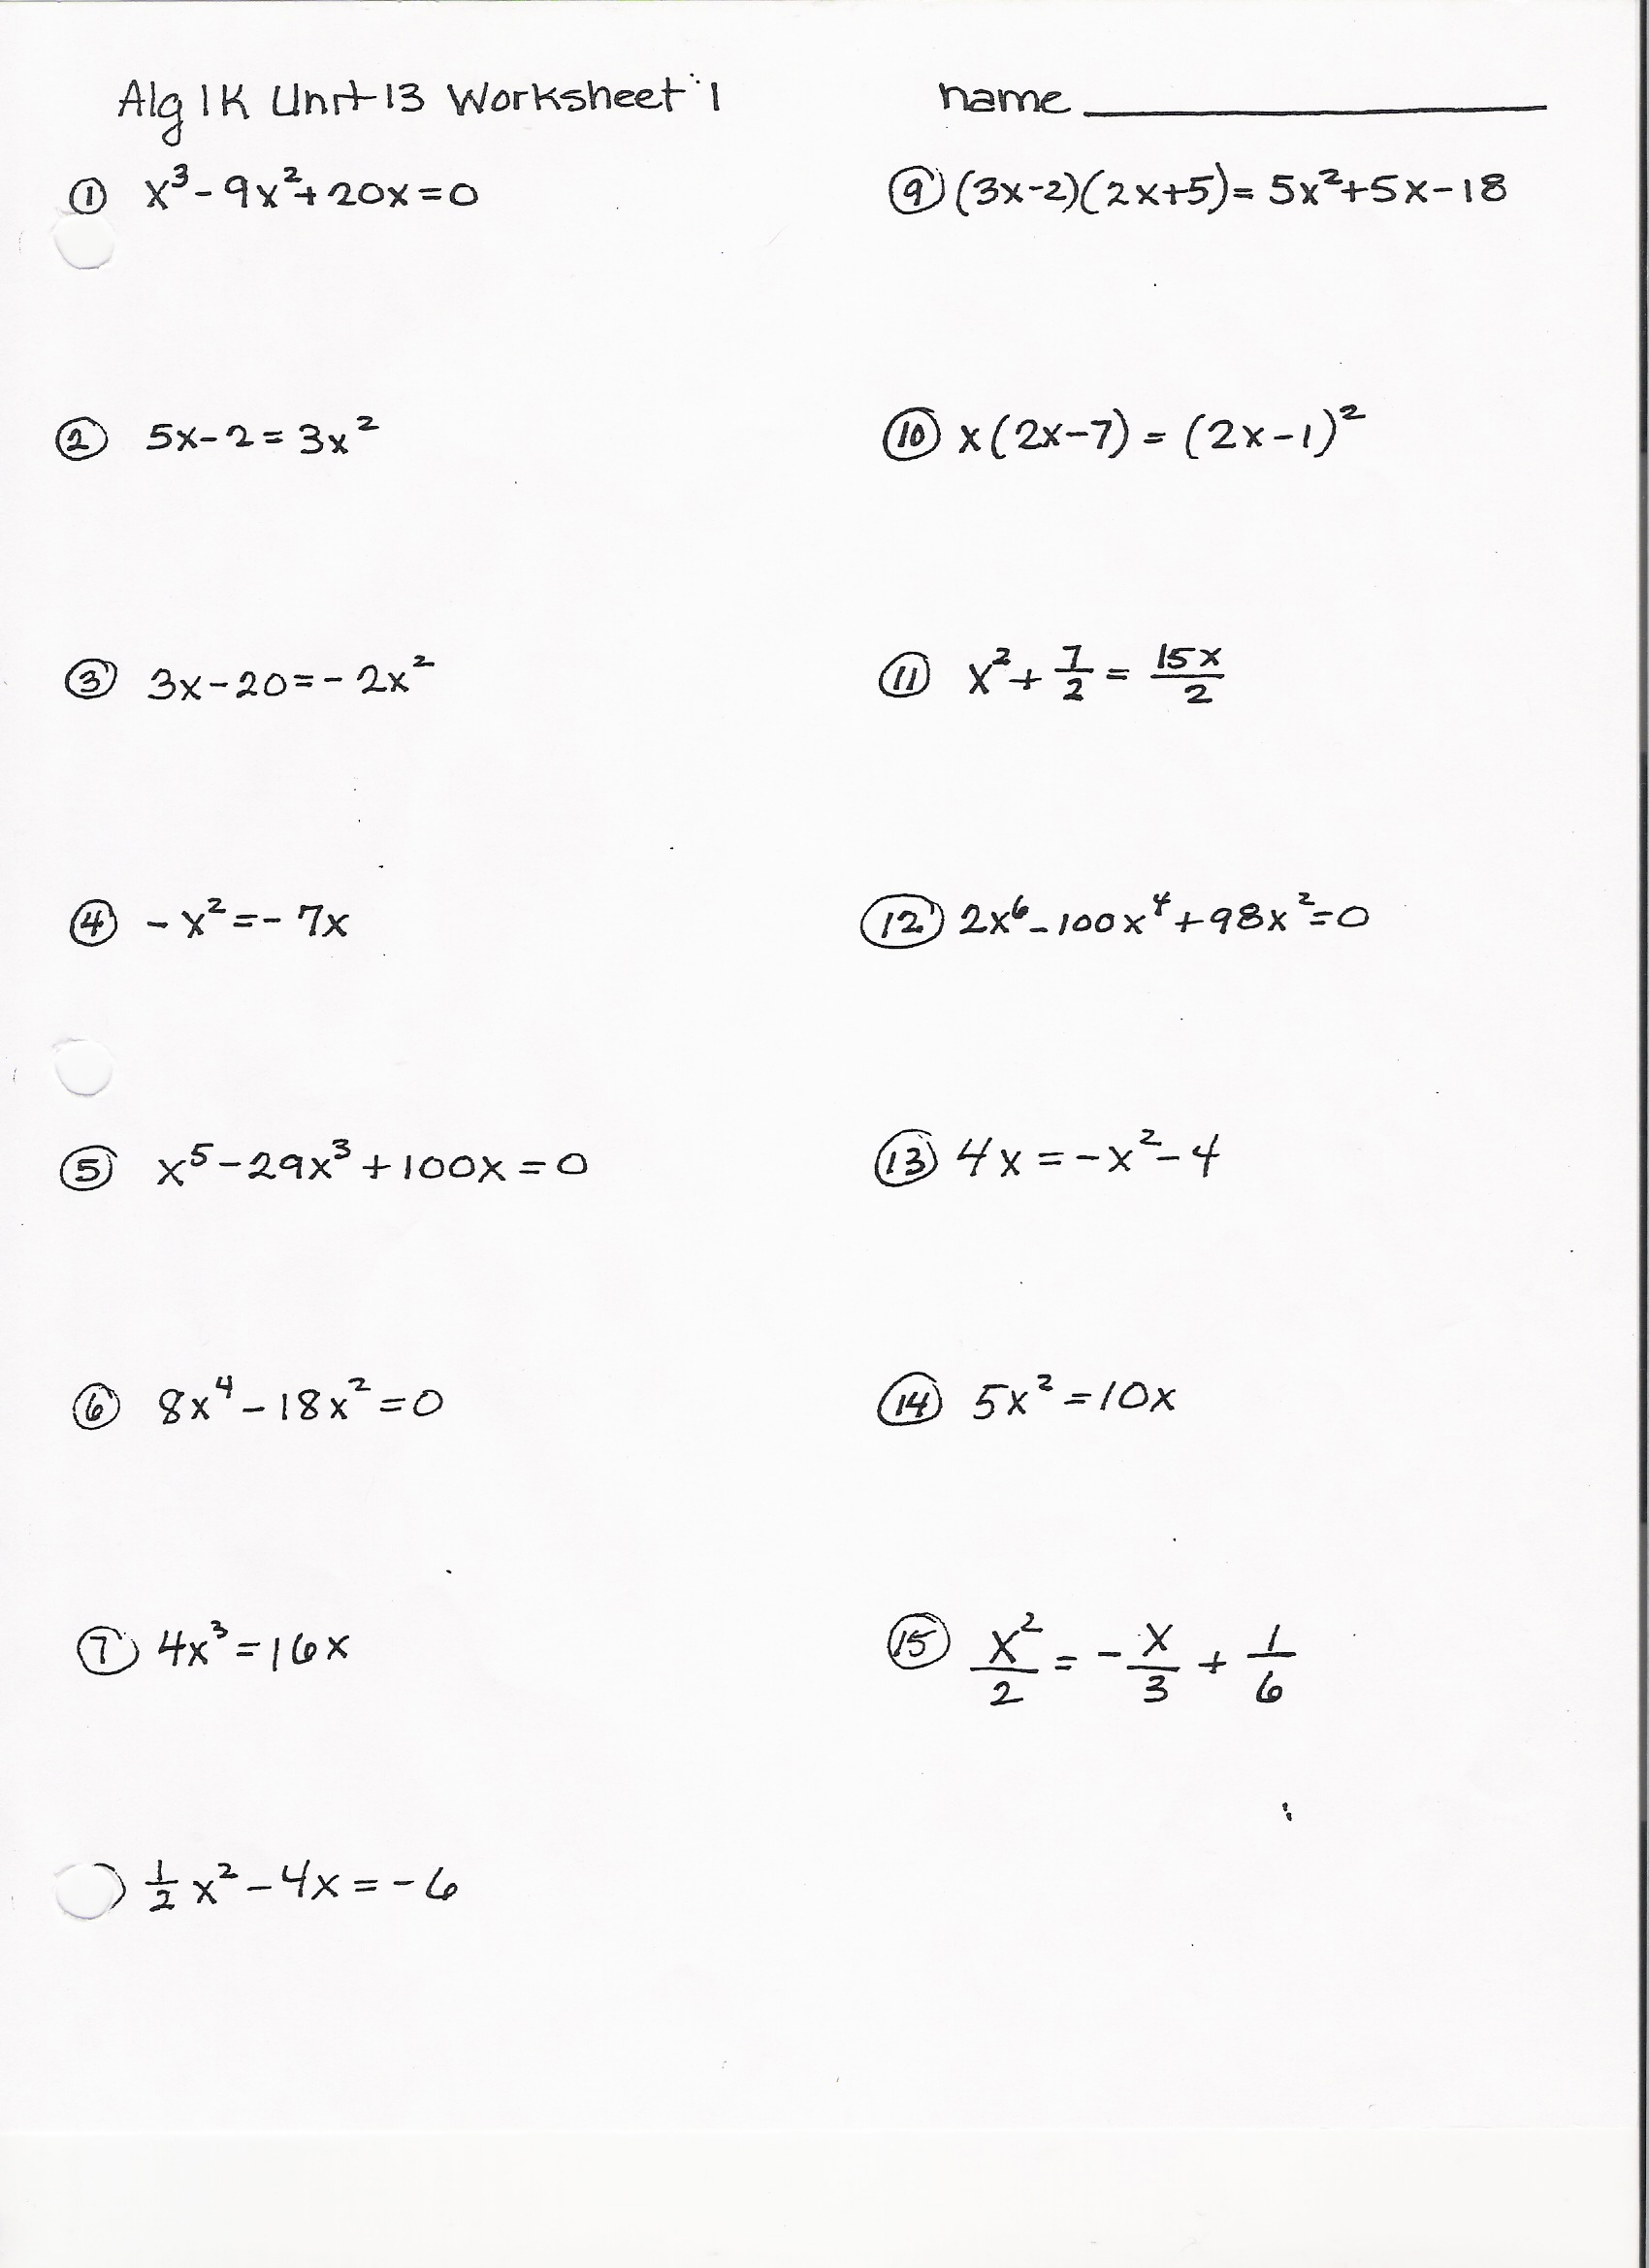 30 Factoring Worksheet Algebra 1